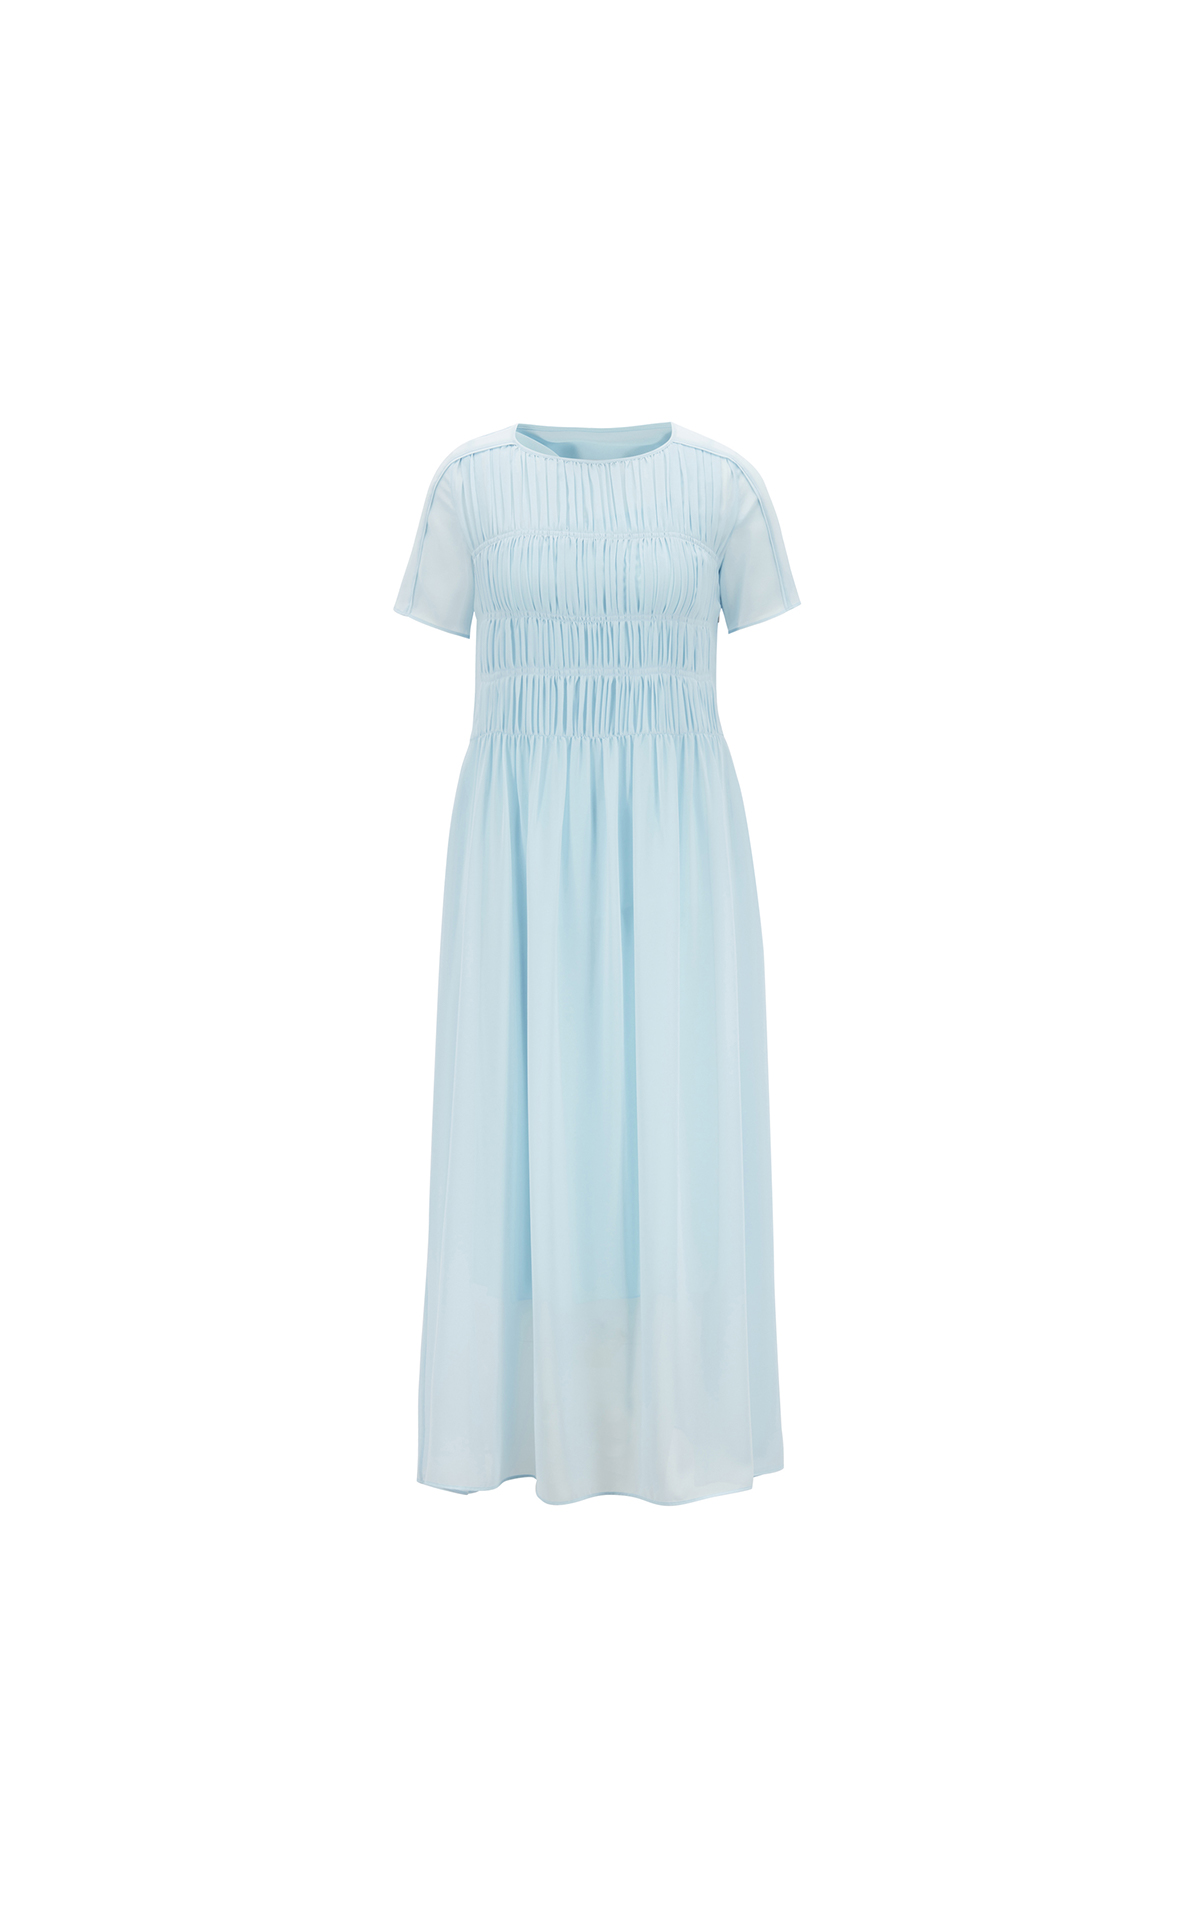 BOSS Women's relaxed-fit dress at The Bicester Village Shopping Collection